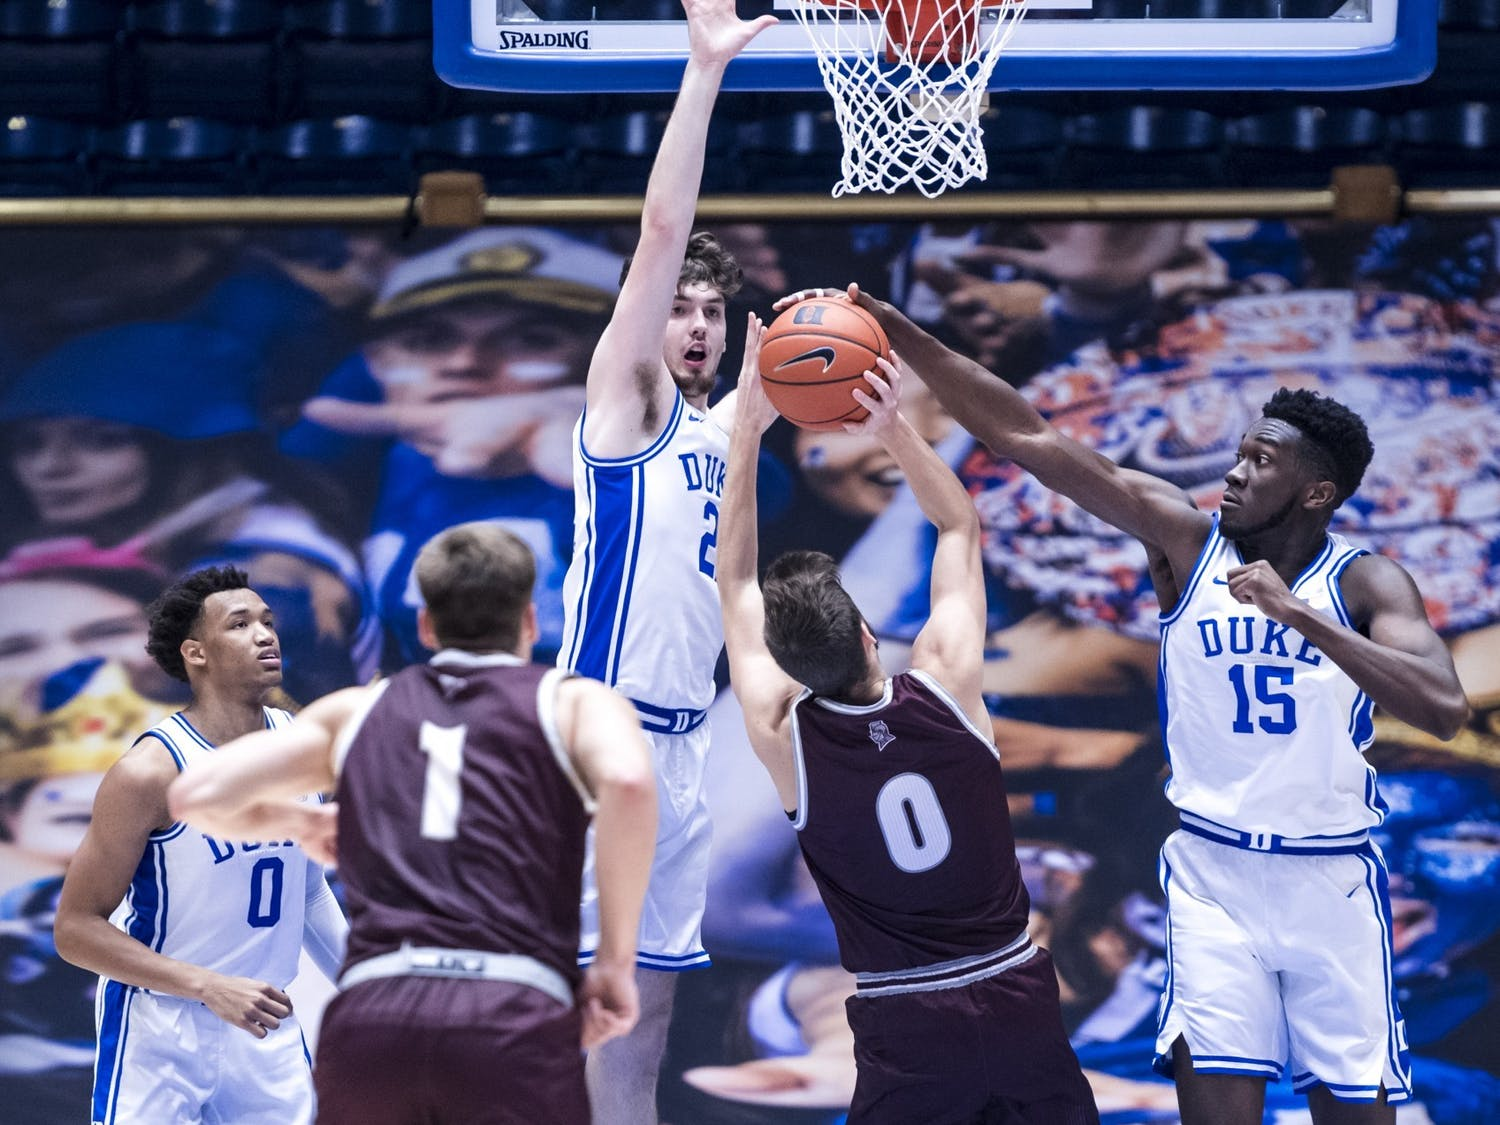 Matthew Hurt and Mark Williams showed great frontcourt chemistry in Friday's win.